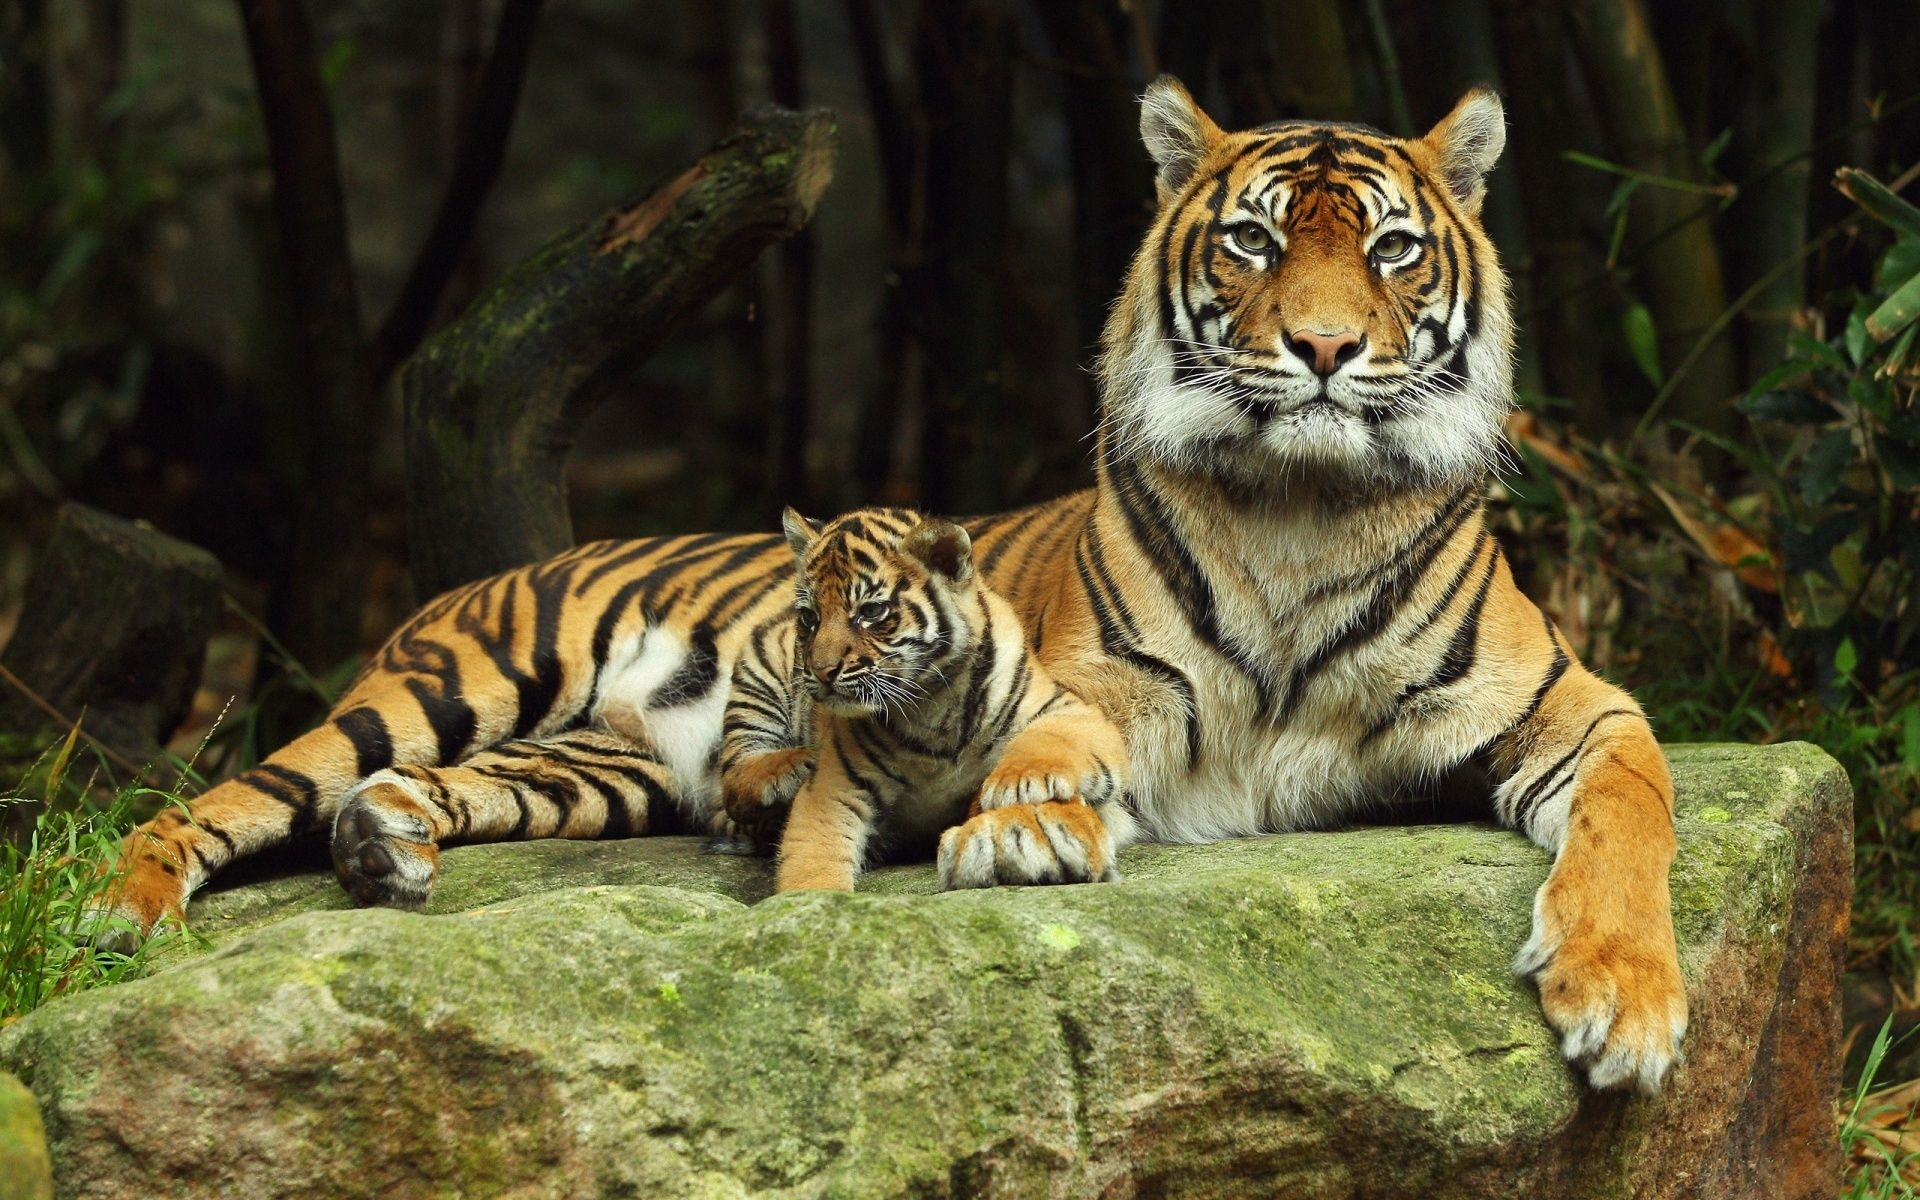 Tiger with baby tiger, Wallpaper